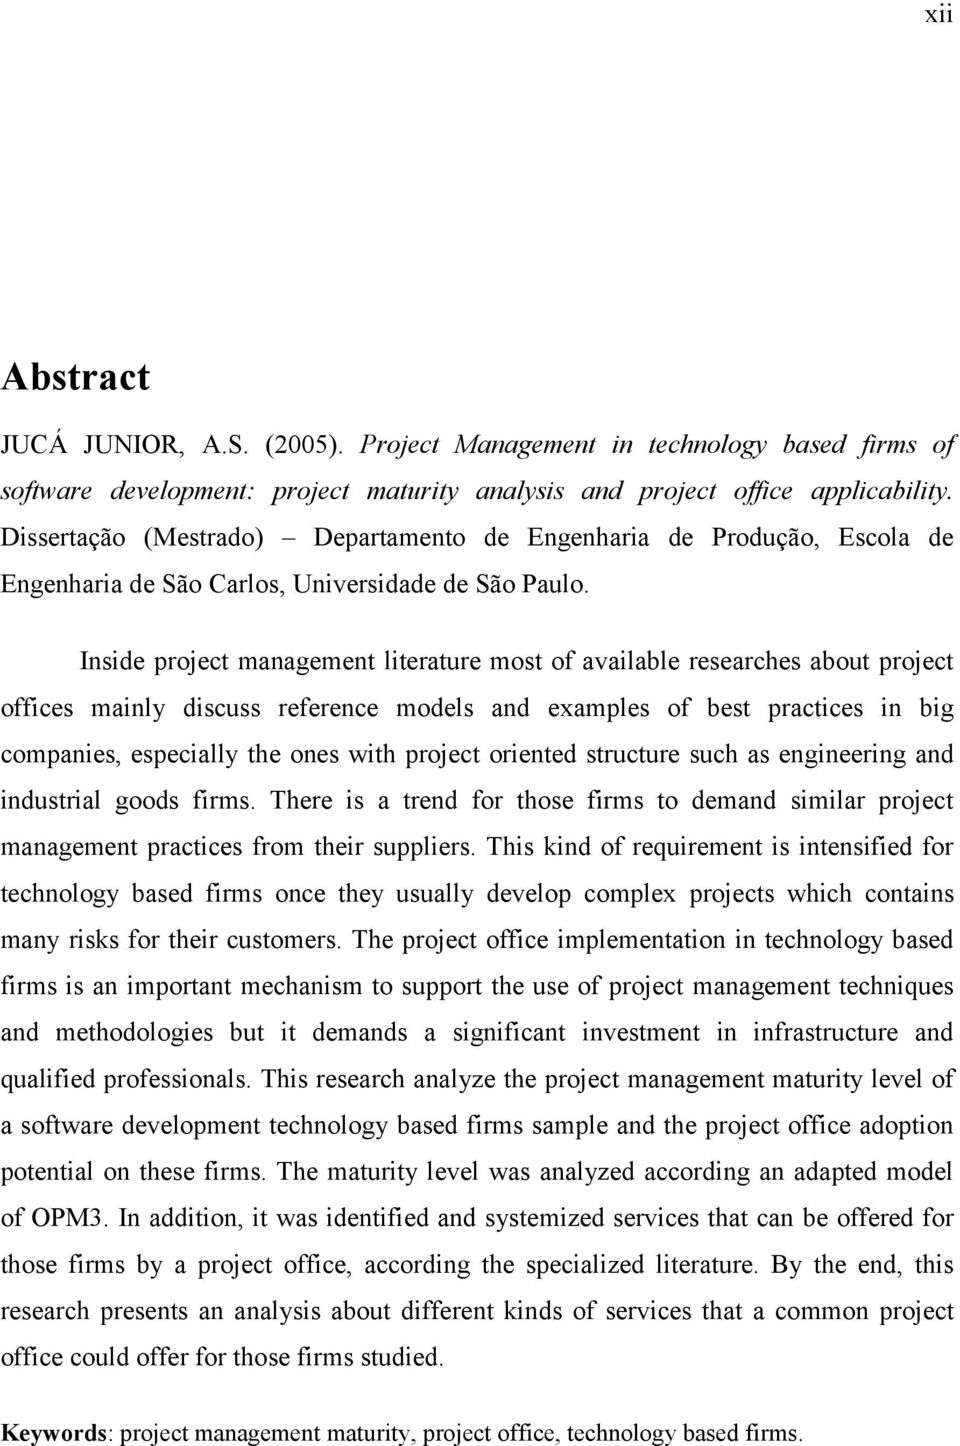 Inside project management literature most of available researches about project offices mainly discuss reference models and examples of best practices in big companies, especially the ones with